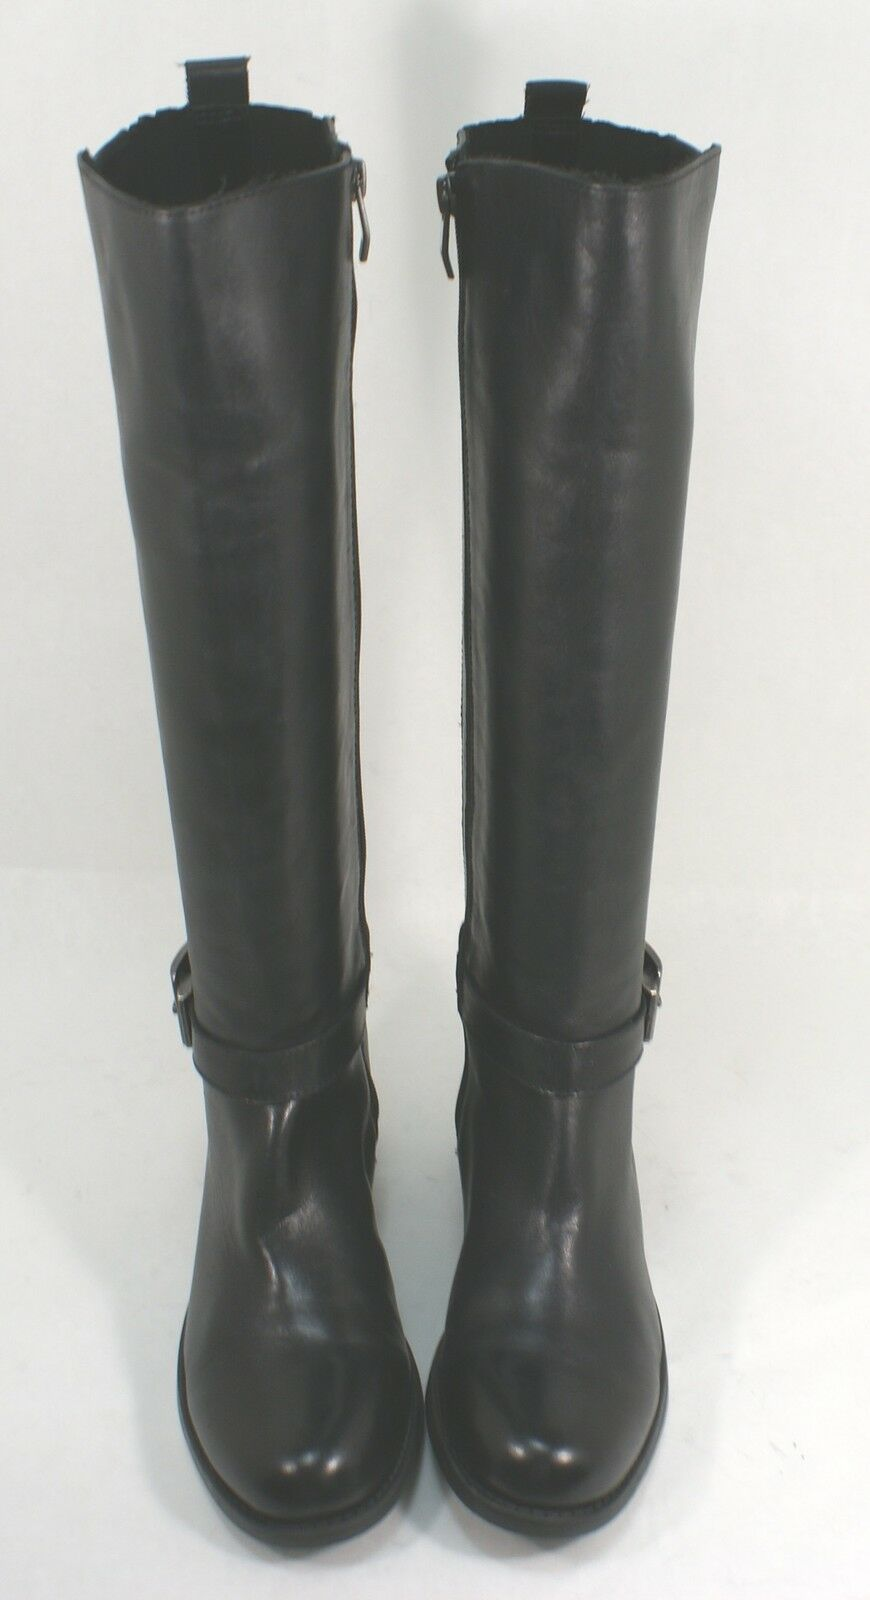 Vince Camuto Size Size Size 7.5  'Kristini'  Riding Boot Black Stretch to Fit Calf 7a1da5